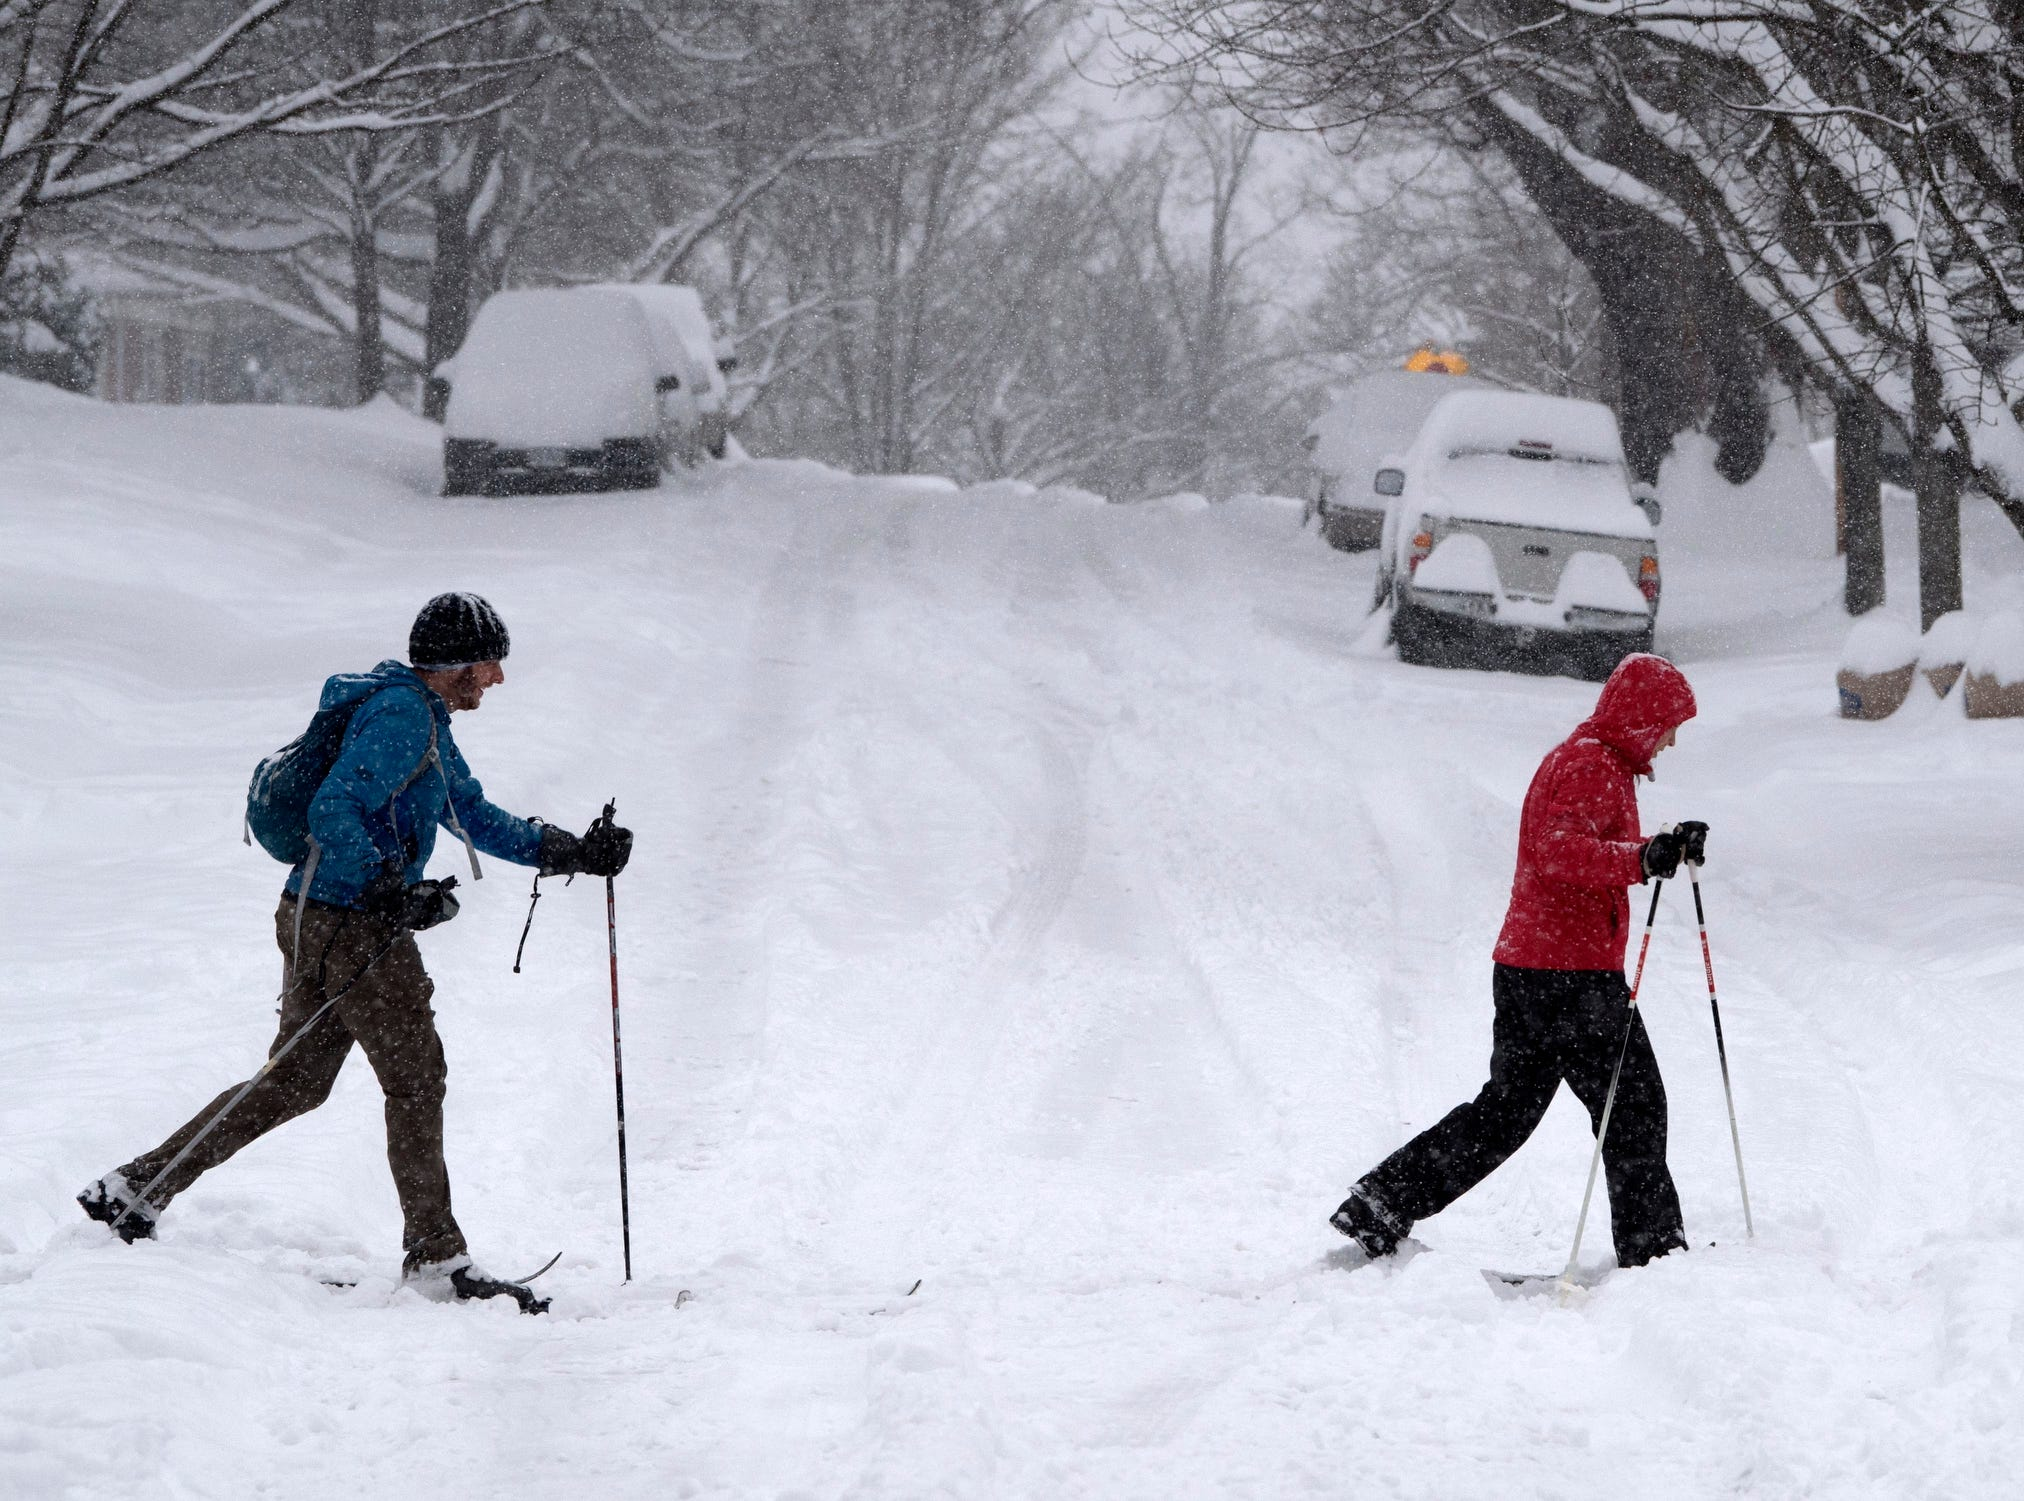 Greg Jans, left, and Stacey Hash get in some cross county skiing in their southwest city neighborhood in Roanoke, Va., Sunday. Snow continues to fall in southwest Virginia.